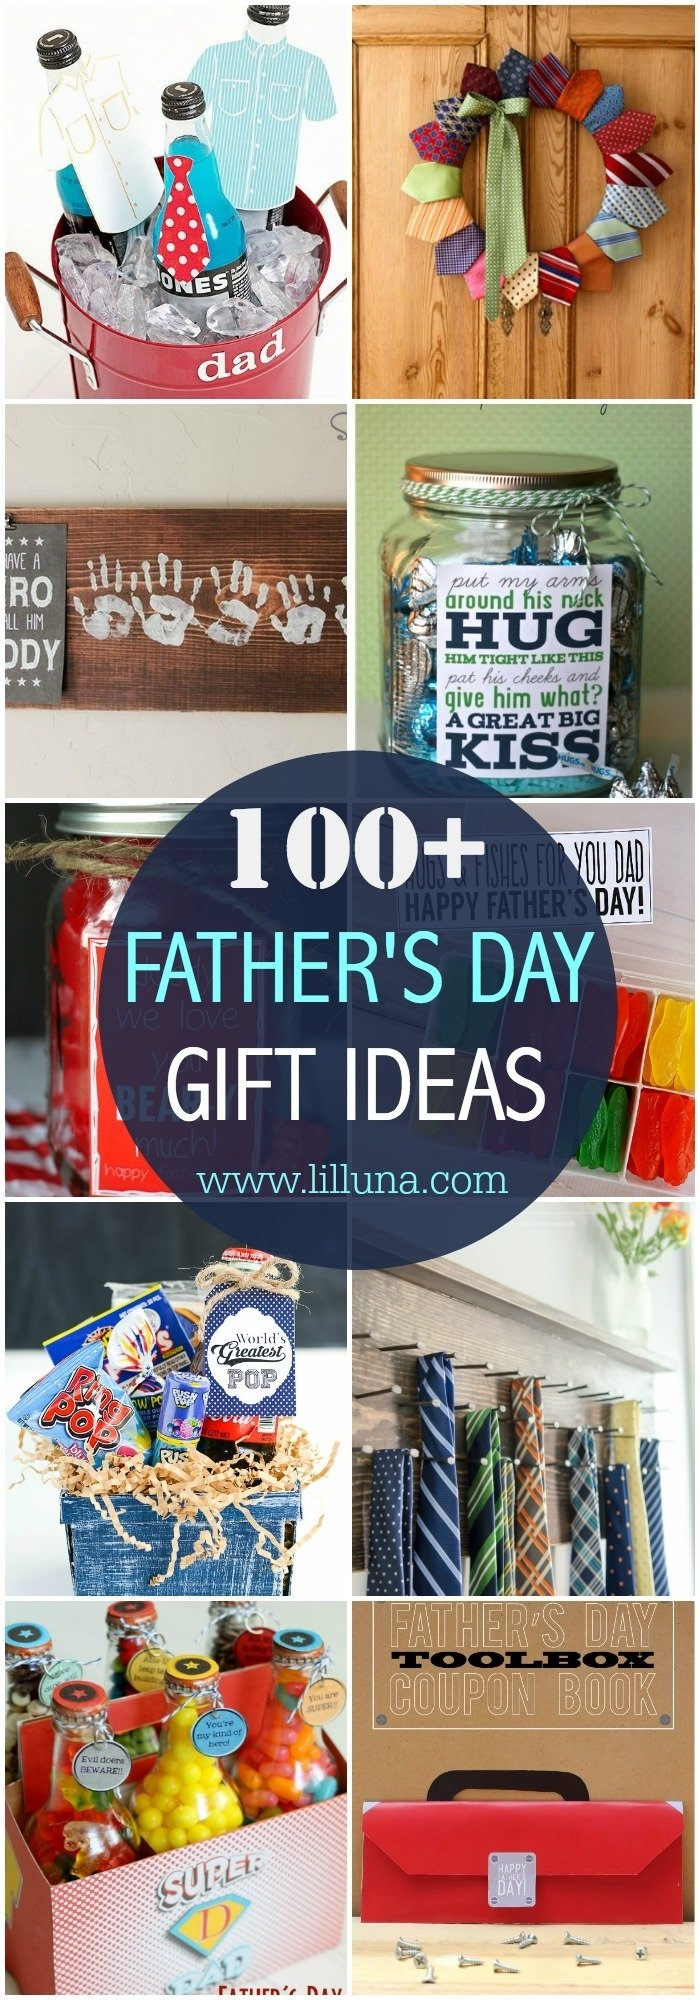 10 Stylish Great Gift Ideas For Dad fathers day gift ideas 3 2020